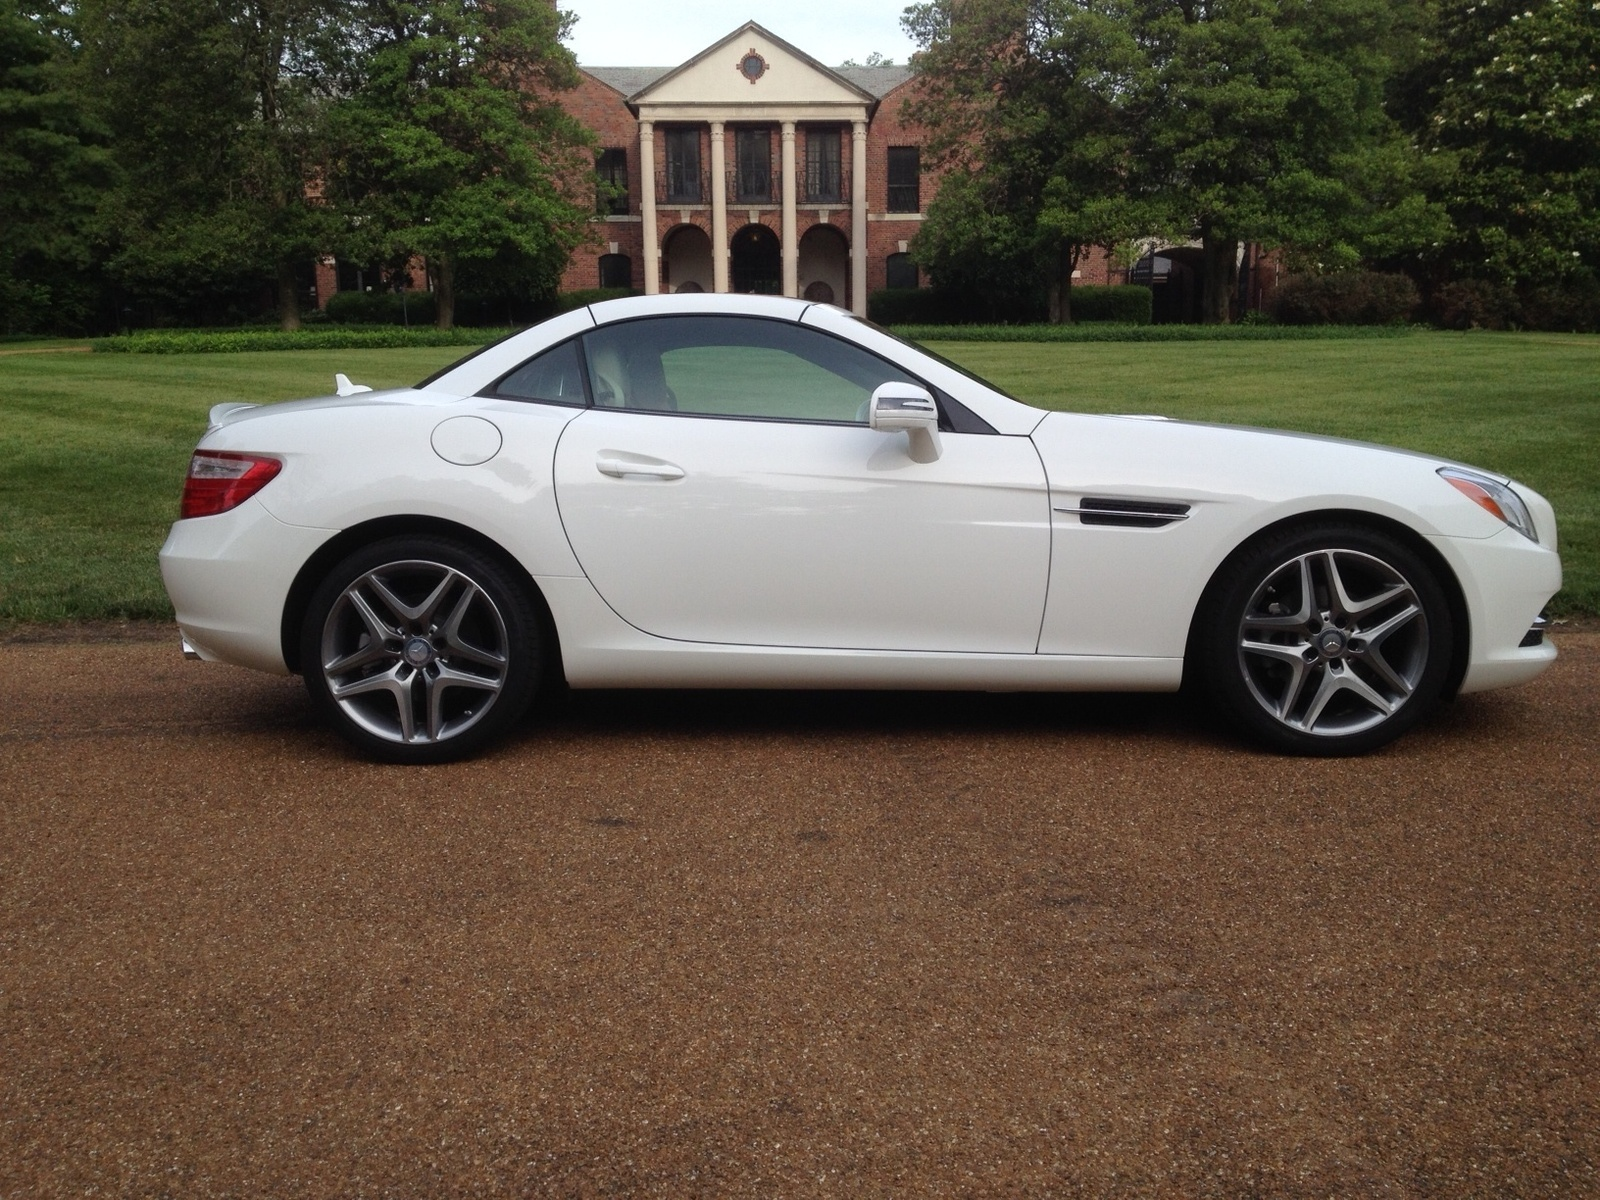 2014 mercedes benz slk class review cargurus for Mercedes benz slk review